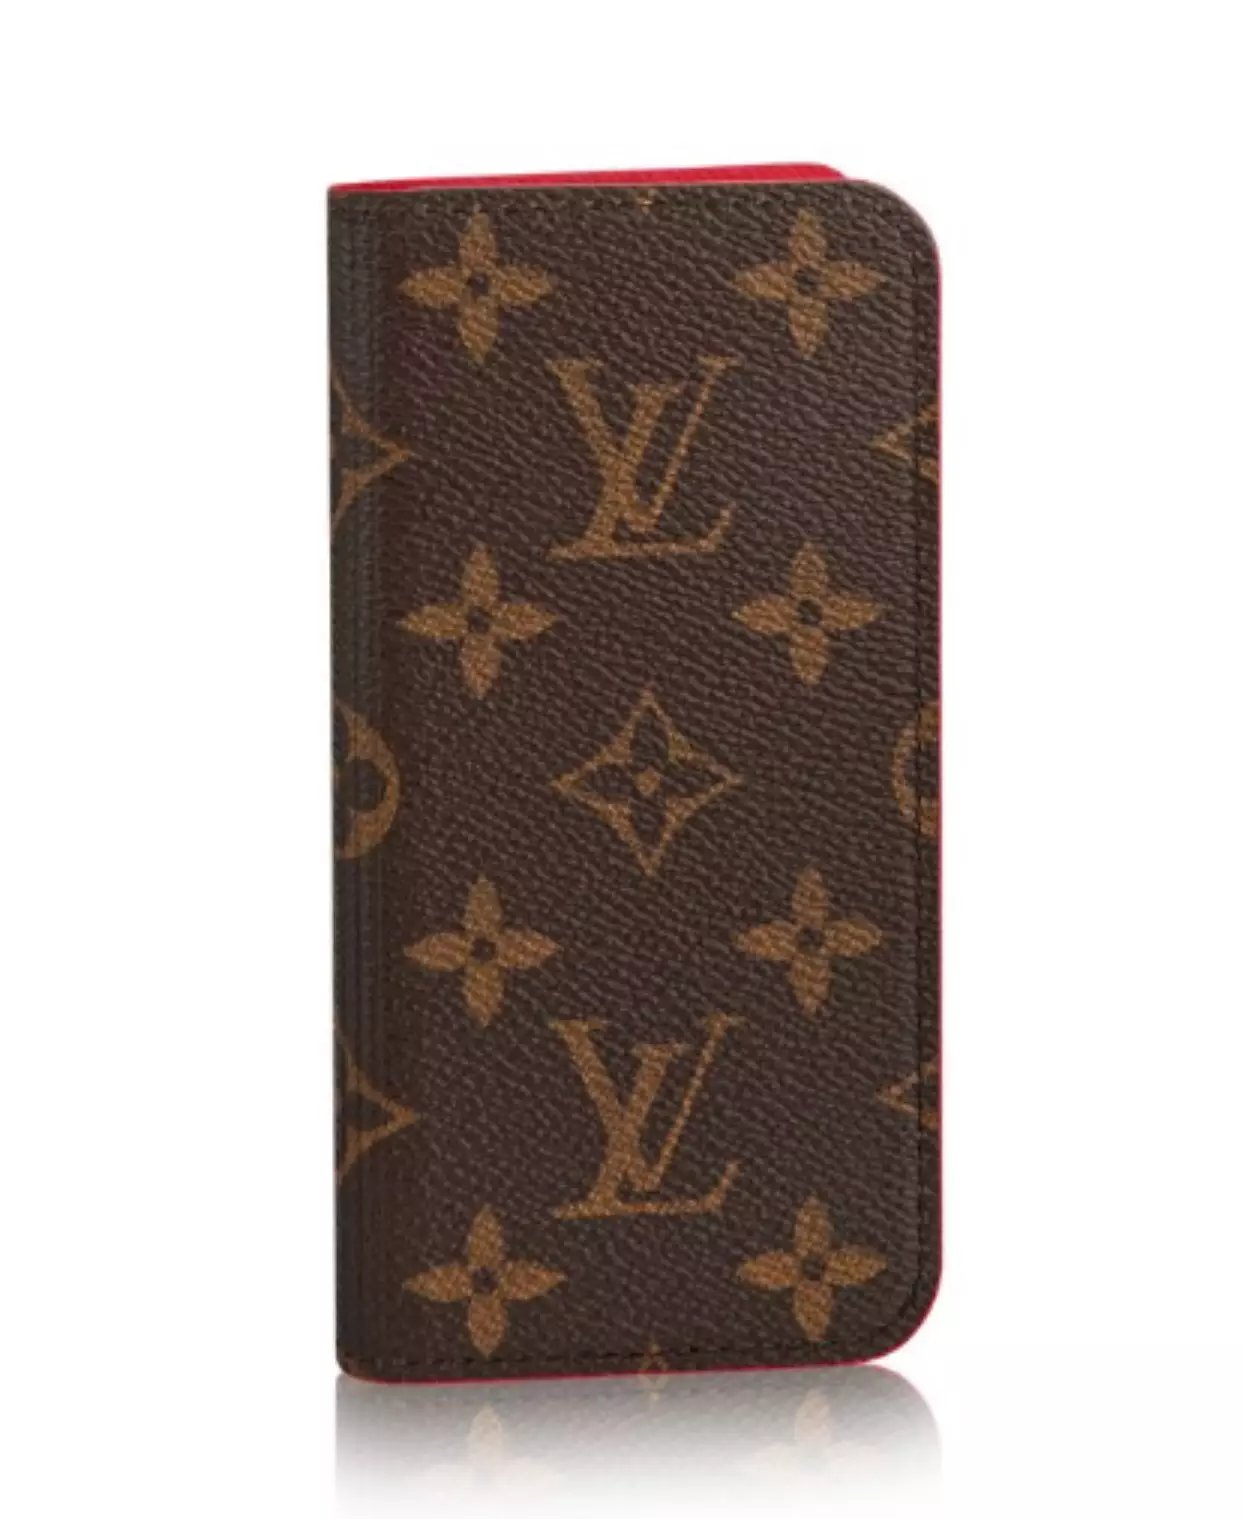 iphone case selbst gestalten günstig iphone hülle selbst gestalten Louis Vuitton iphone7 Plus hülle partner hüllen iphone samsung bilder erscheinungsdatum iphone 6 iphone 7 Plus apple ca7 edle iphone 7 Plus hüllen i phone neu